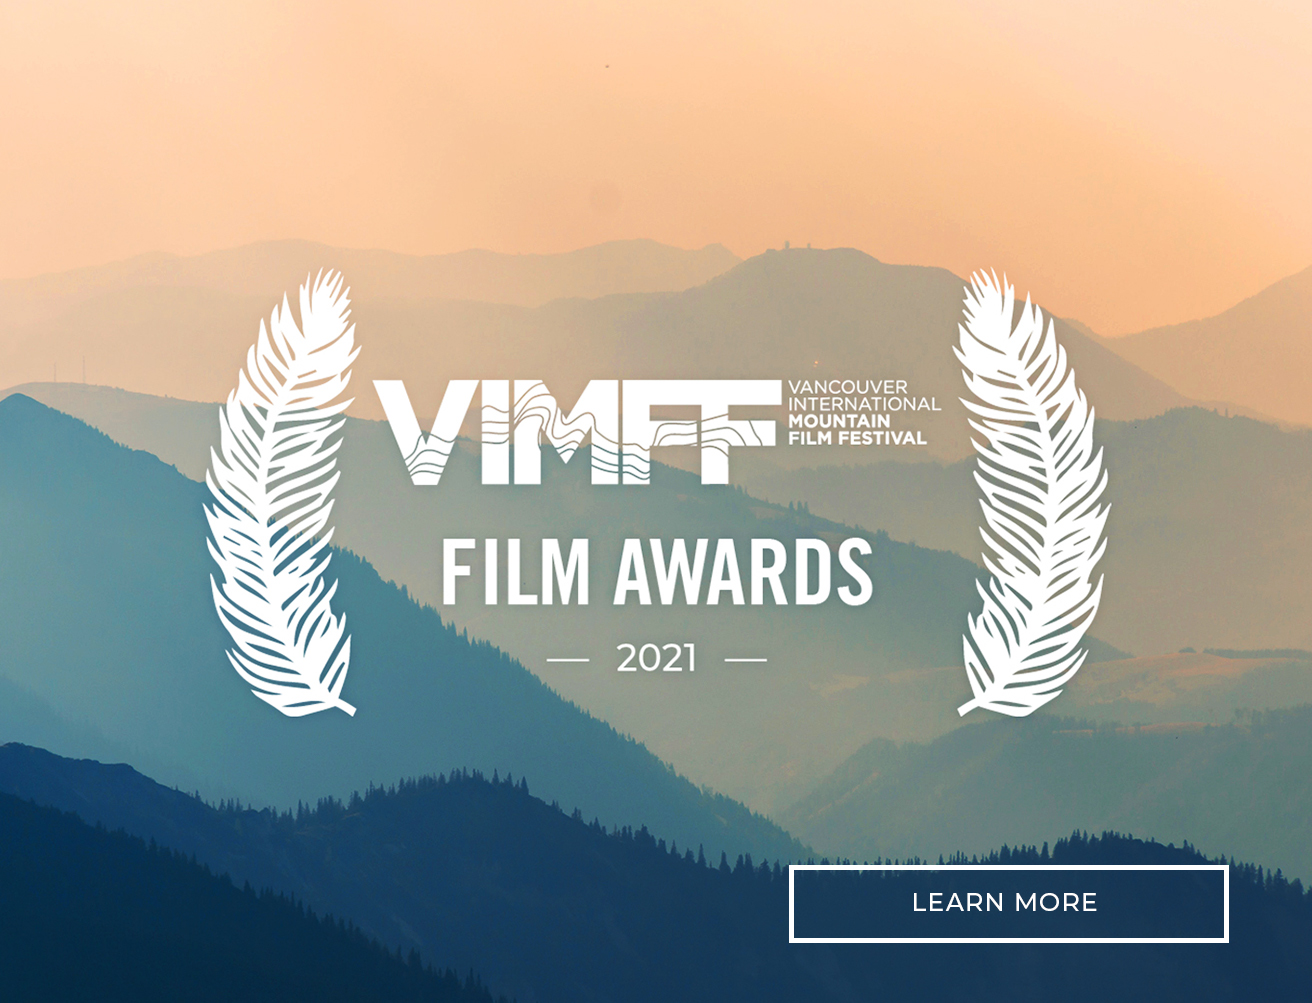 vimff film awards cta